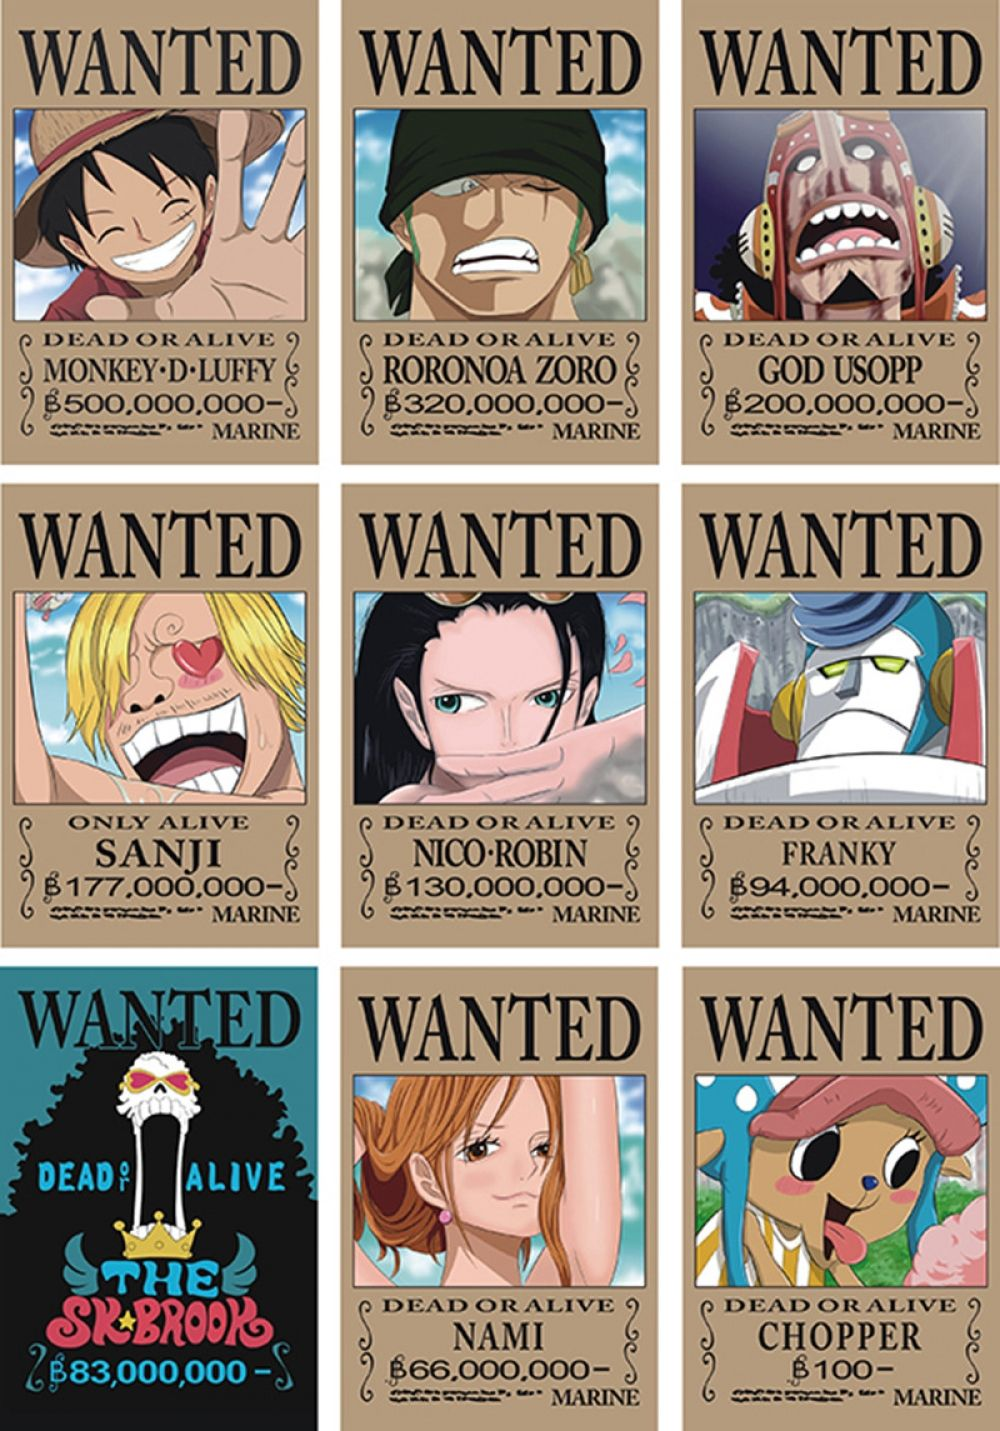 9 42x29cm One Piece Wanted Poster Price 20 00 Free Shipping Anime À¹'ปสเตอร À¸«à¸™ À¸‡à¹€à¸ À¸² À¸§ À¸™à¸ž À¸‹ À¸à¸²à¸£à¸ªà¸à¸™